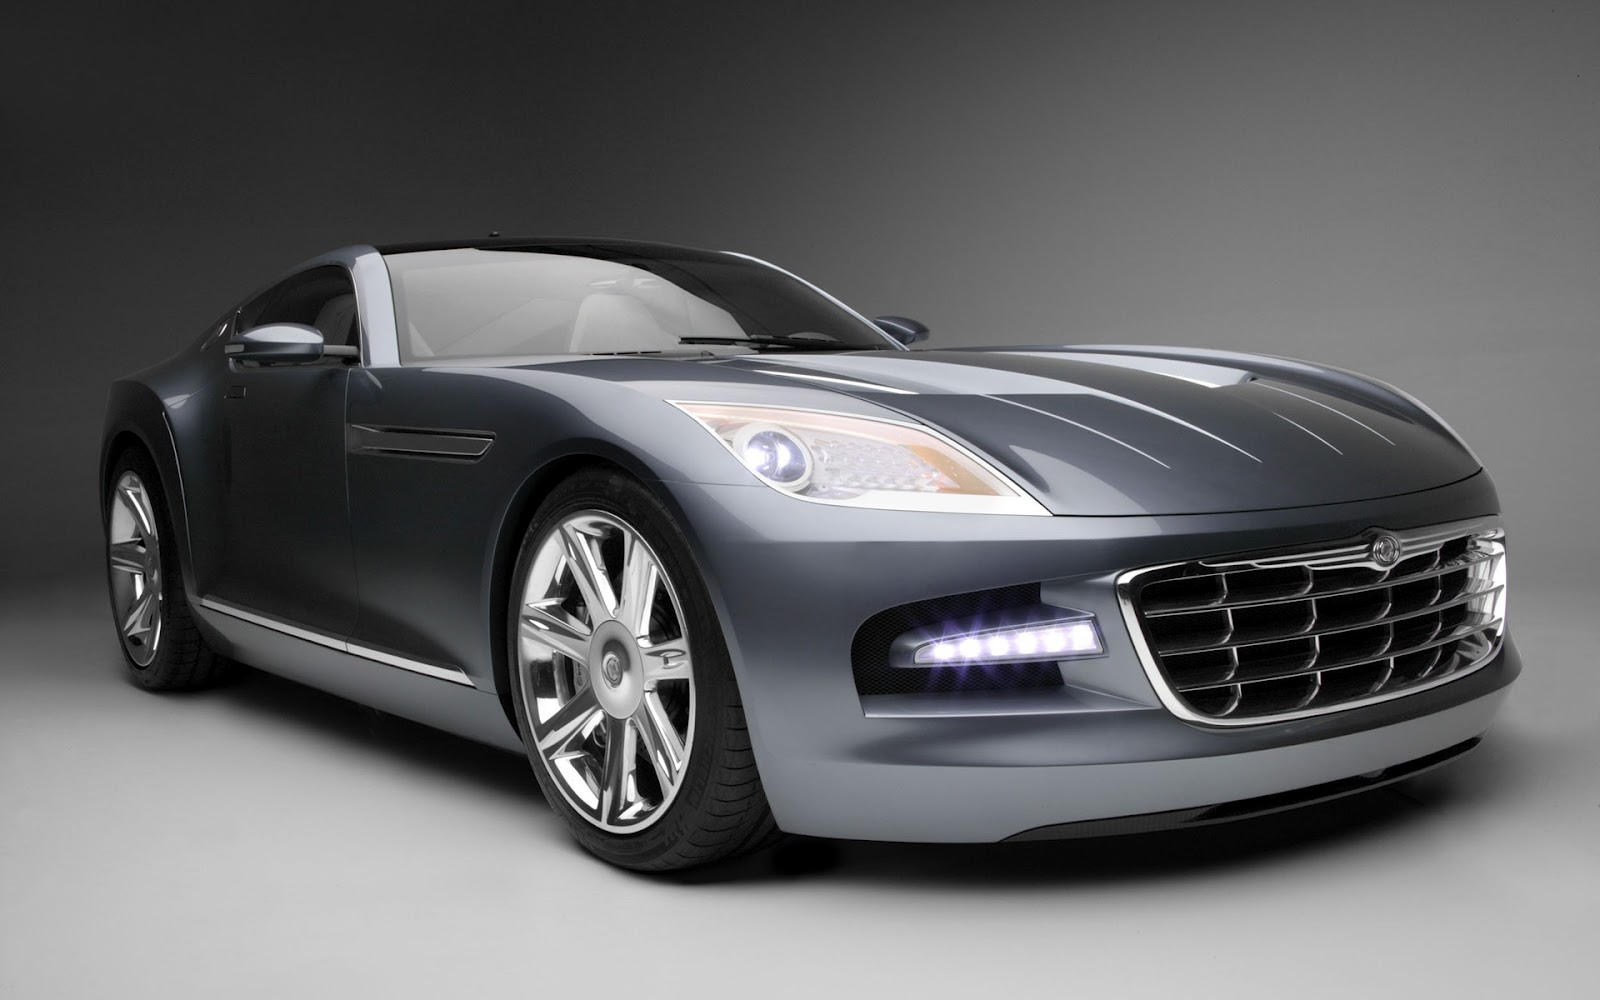 chrysler cars hd wallpapers cars hd wallpapers. Black Bedroom Furniture Sets. Home Design Ideas